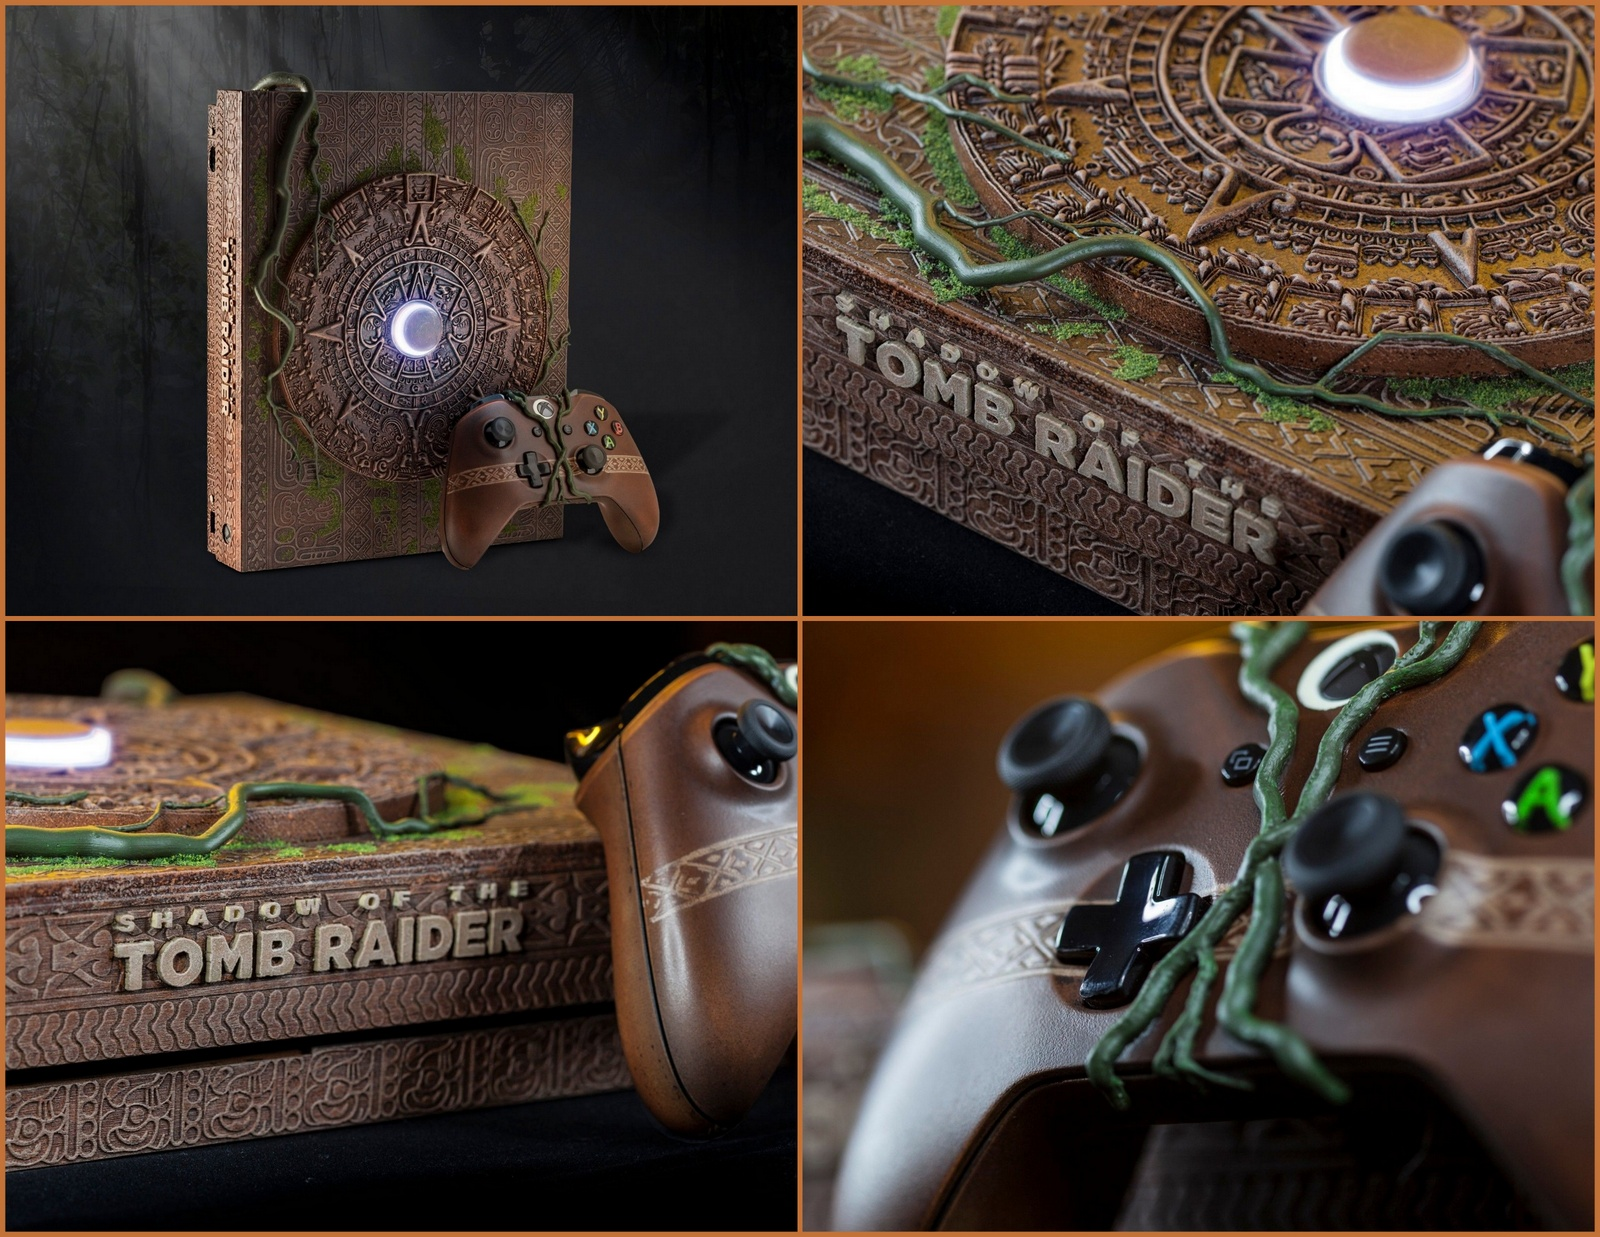 article-shadow-of-the-tomb-raider-xbox-one-x.jpg